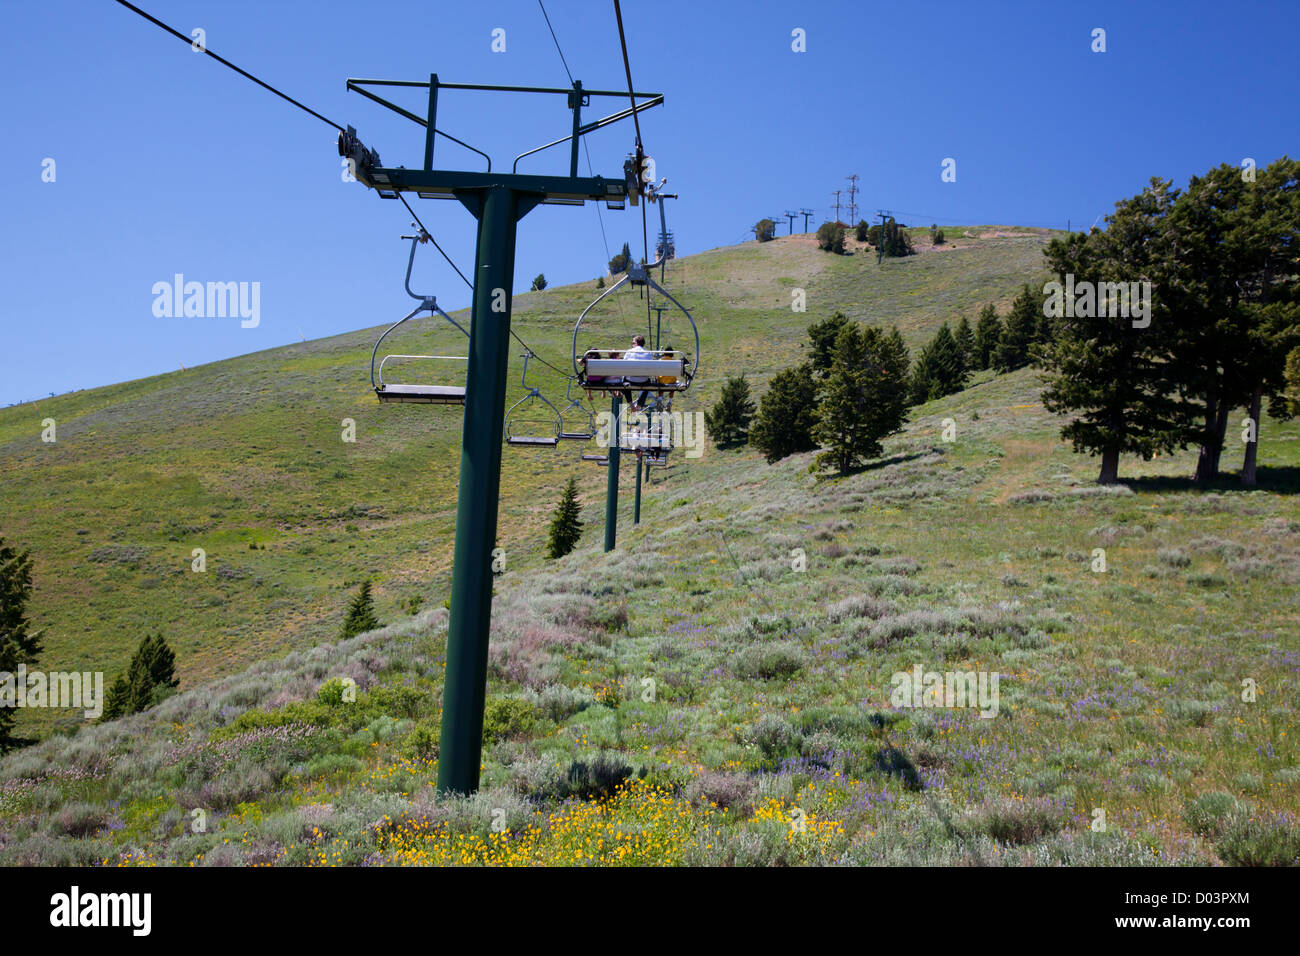 Idaho, Ketchum, Sun Valley, view from the Christmas Lift on Bald Mountain - Stock Image